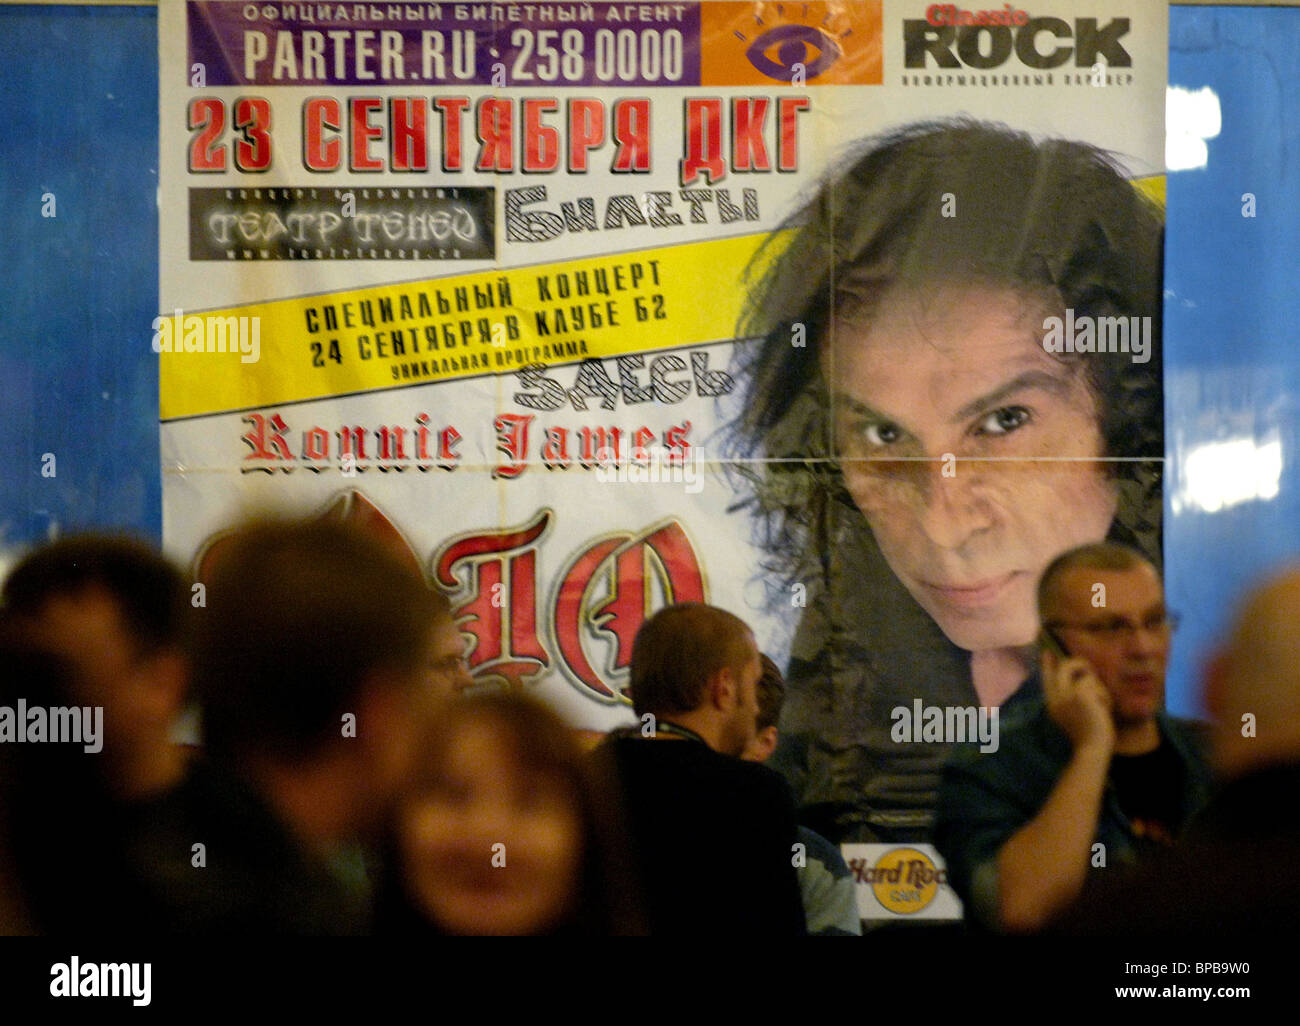 Concert by Ronnie James Dio in Moscowїs Luzhniki - Stock Image